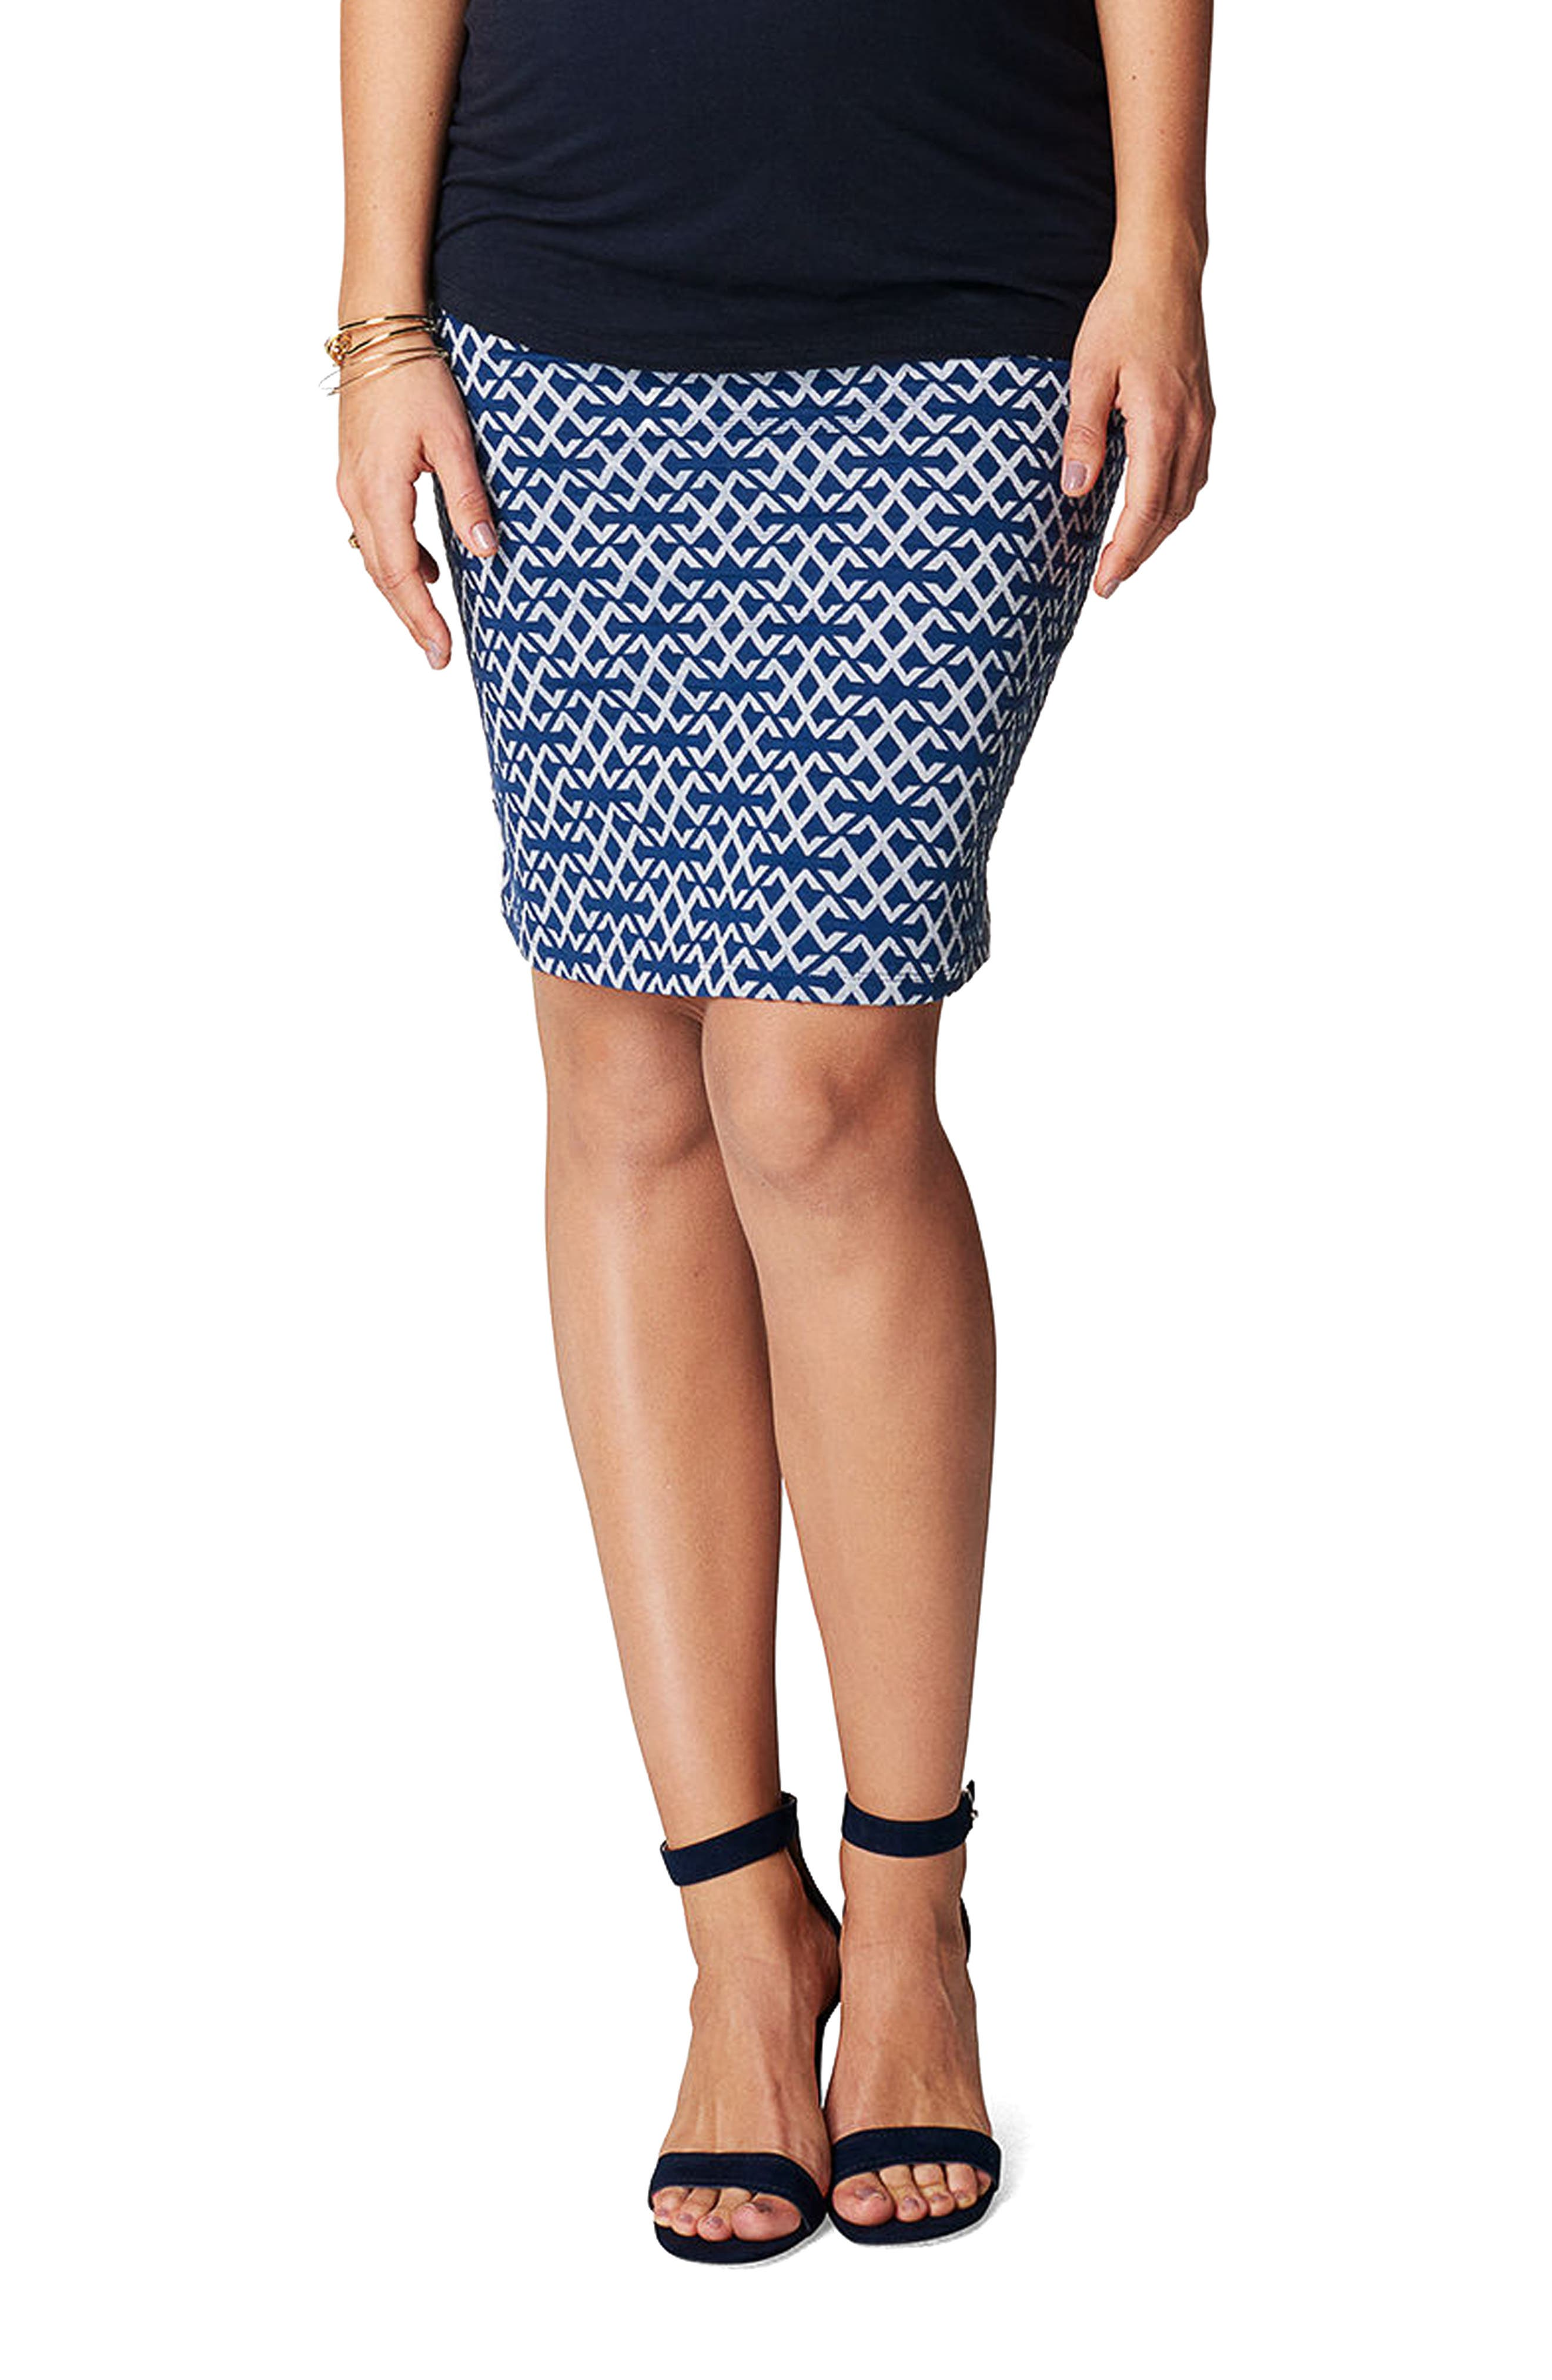 Luna Over the Belly Maternity Skirt,                             Main thumbnail 1, color,                             Blue